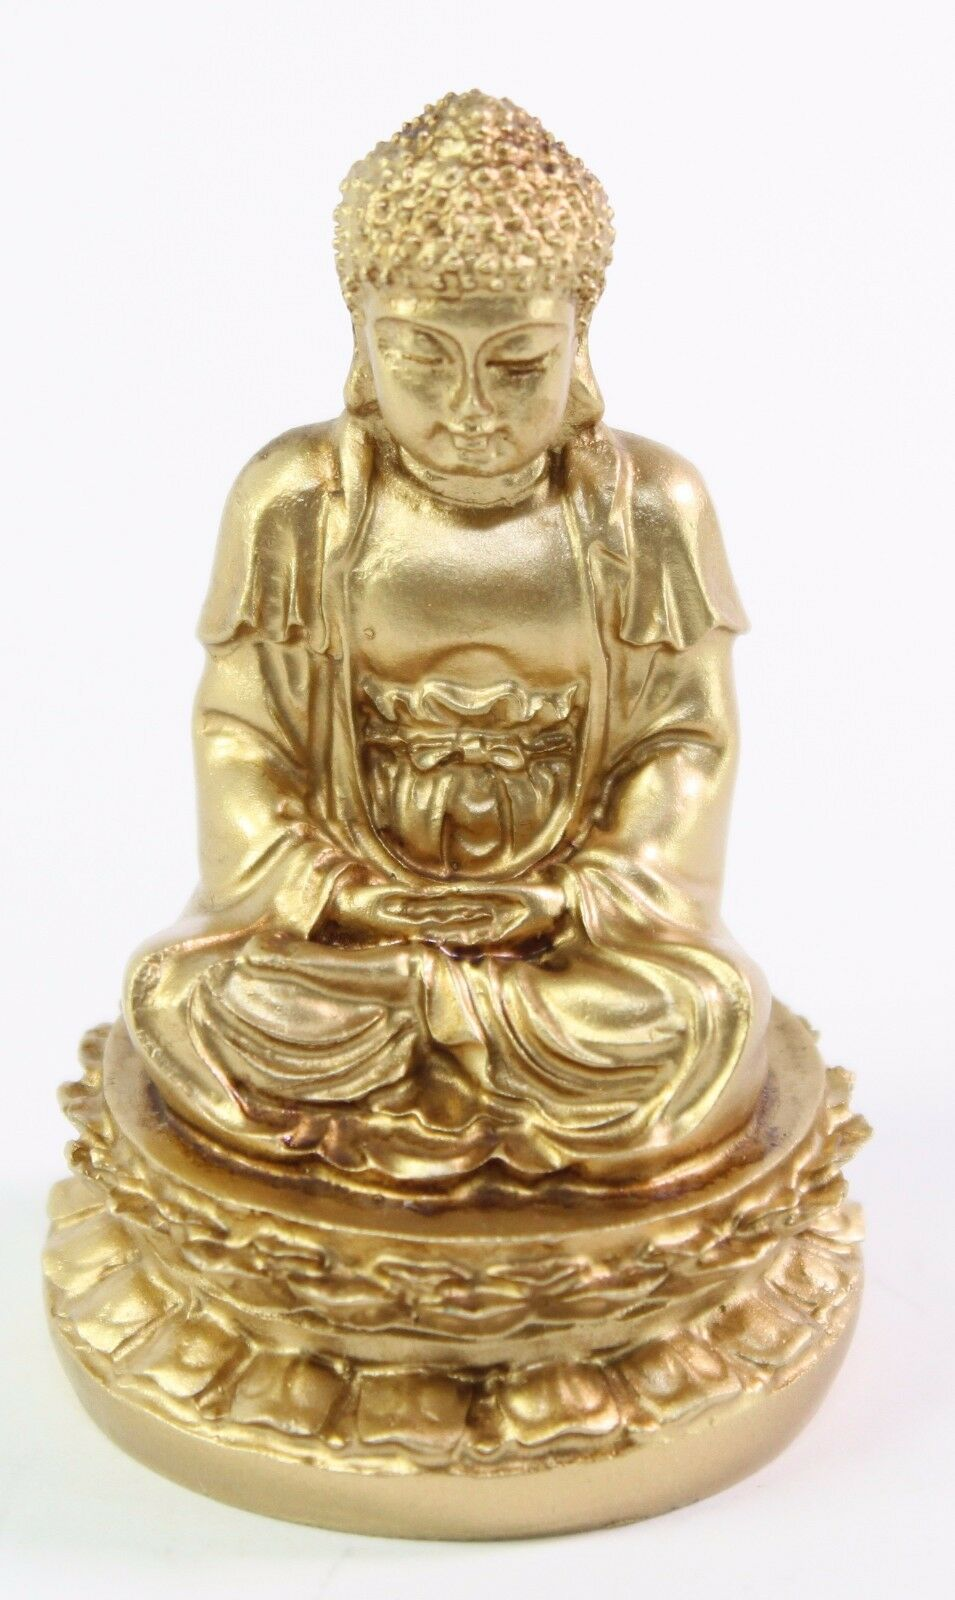 feng shui 2 034 gold meditating buddha figurine peace luck statue paperweight gift ebay. Black Bedroom Furniture Sets. Home Design Ideas